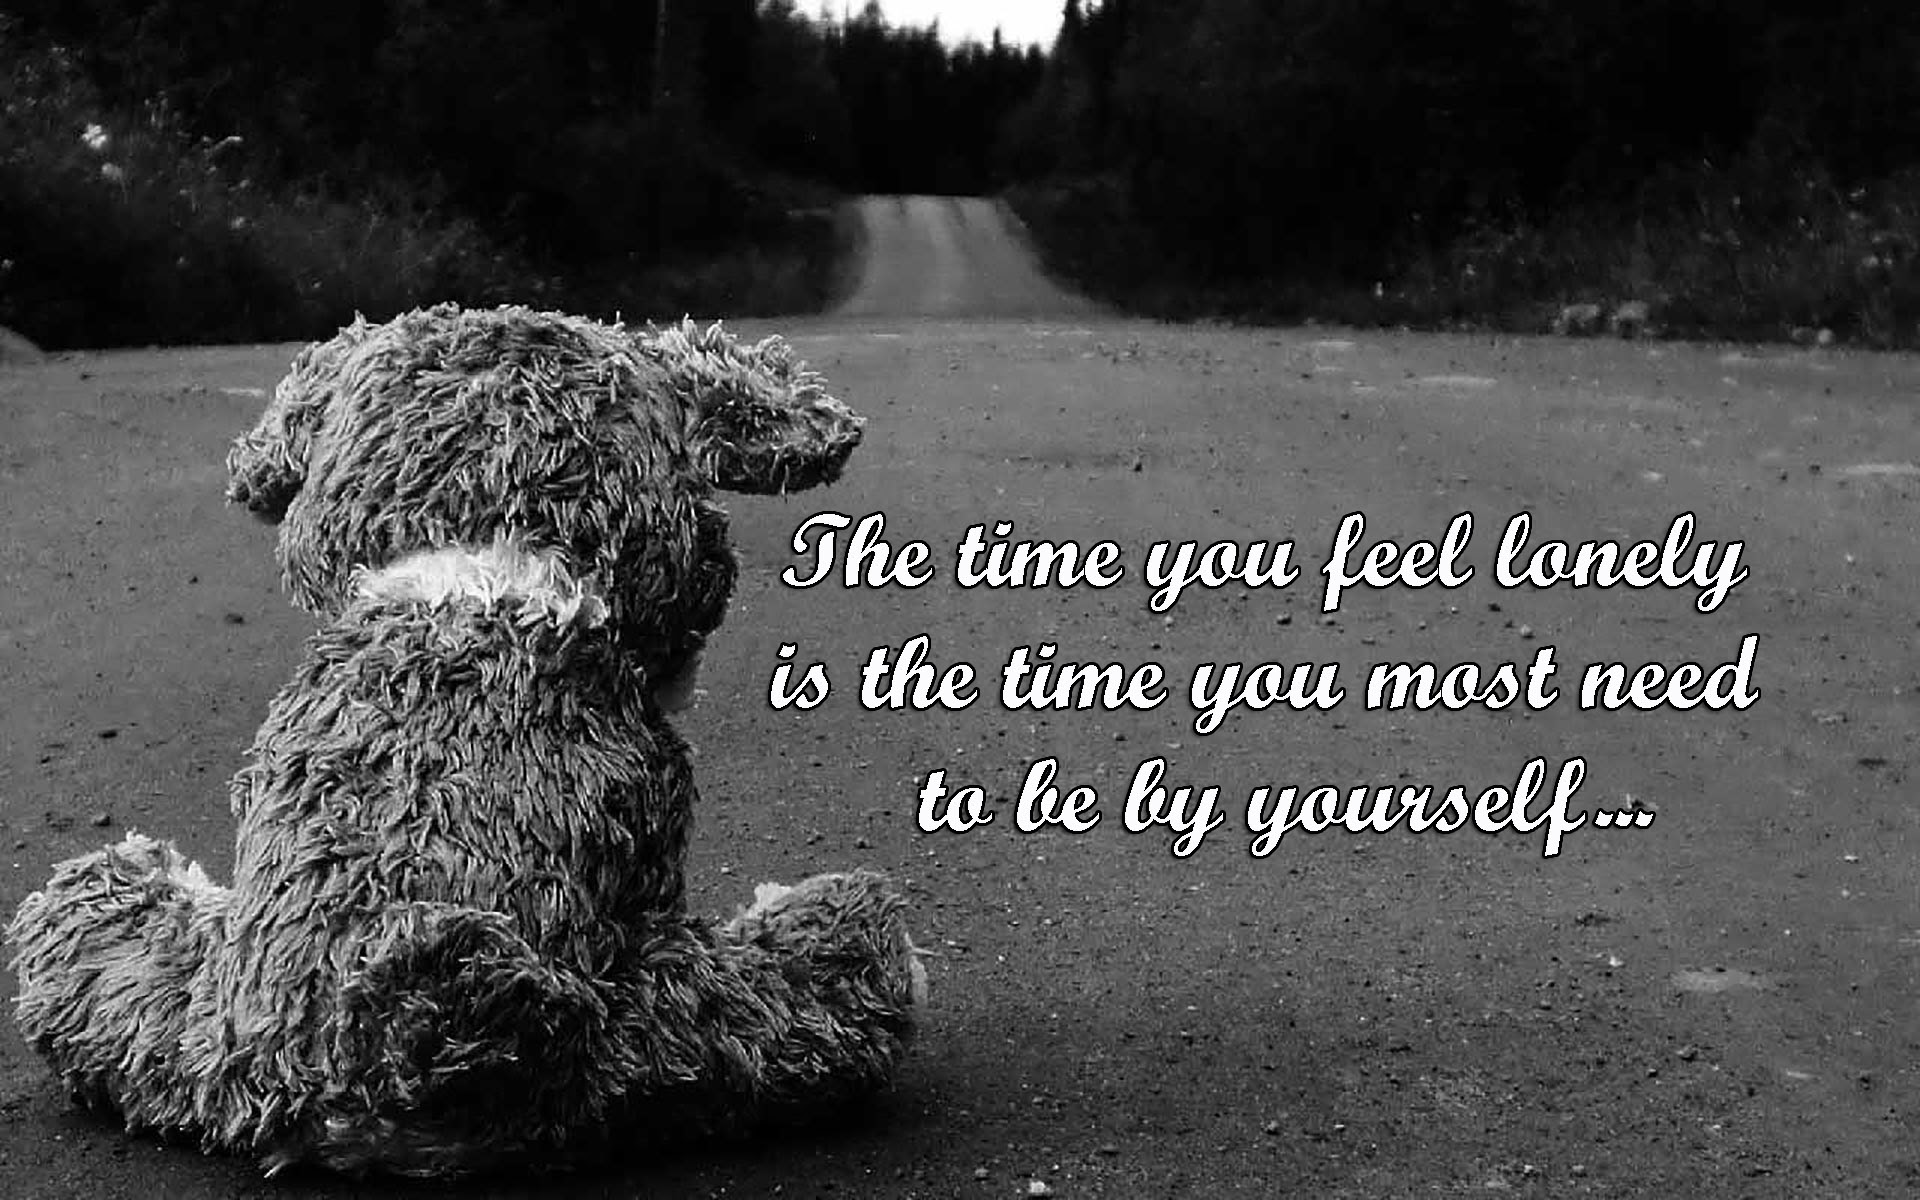 Quotes About Loneliness| Sad Thoughts - My Site